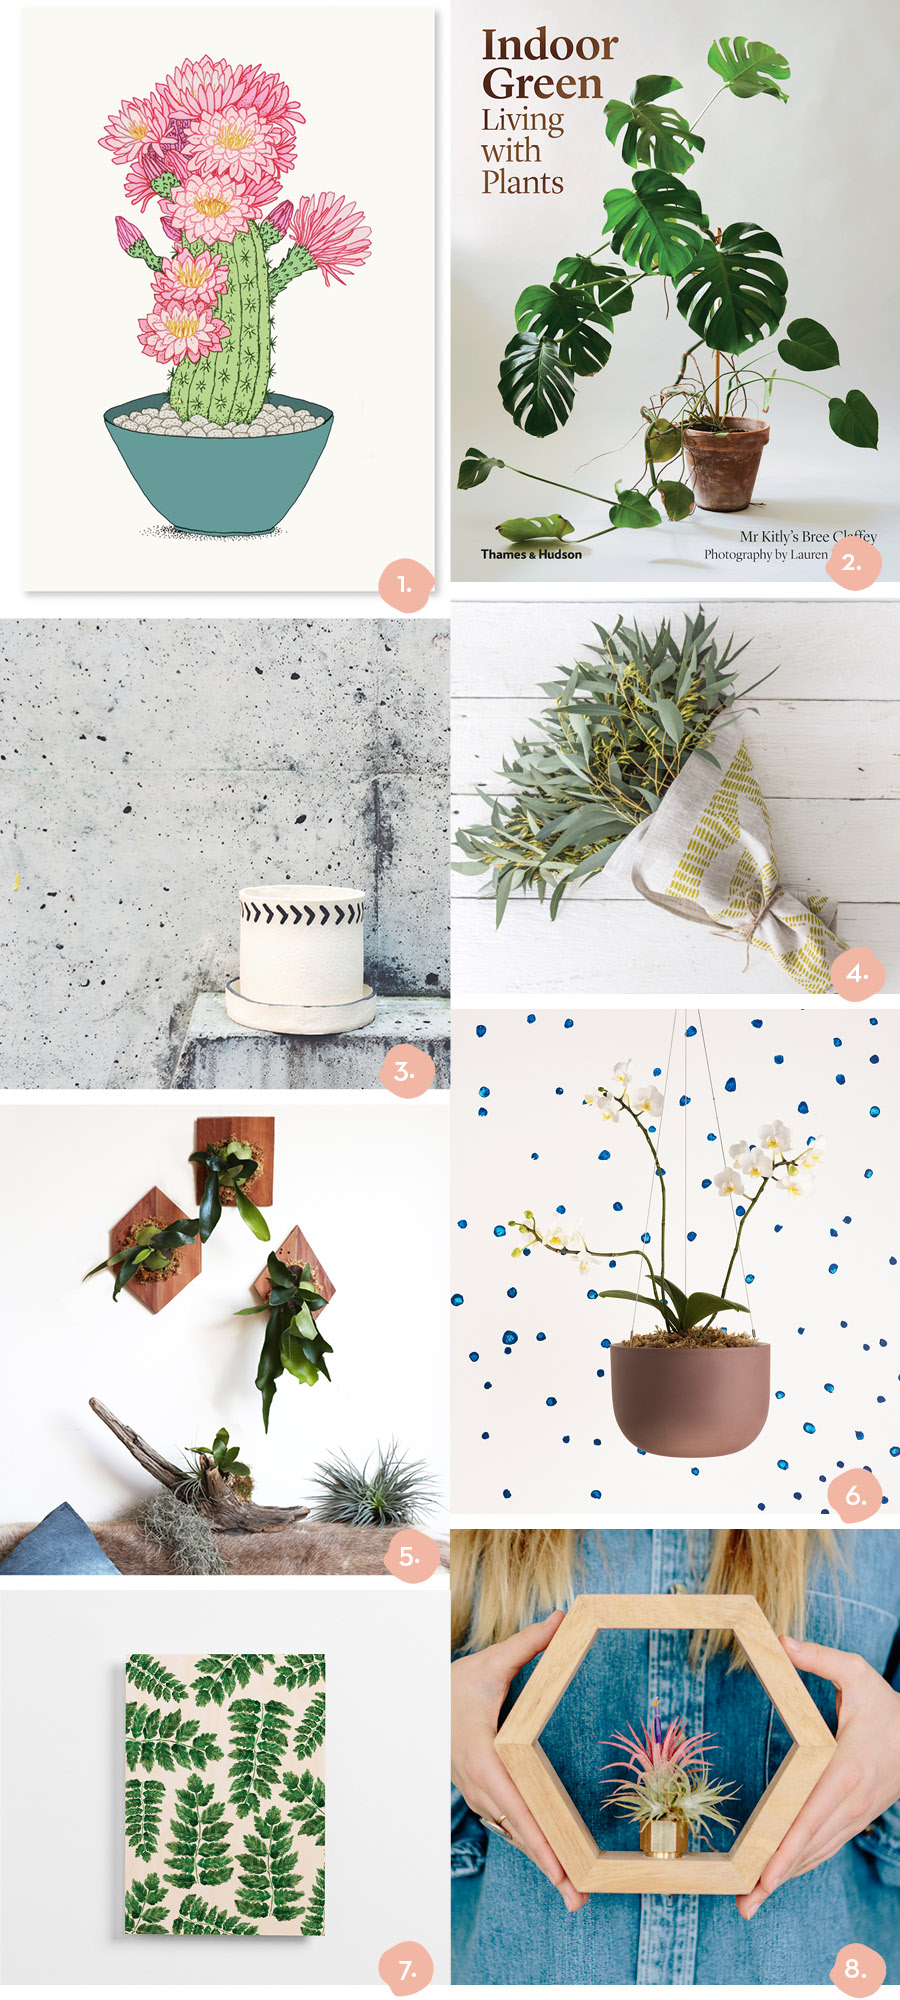 Finders Keepers Blog Gift Guide Homewares and Plants with Staghorn